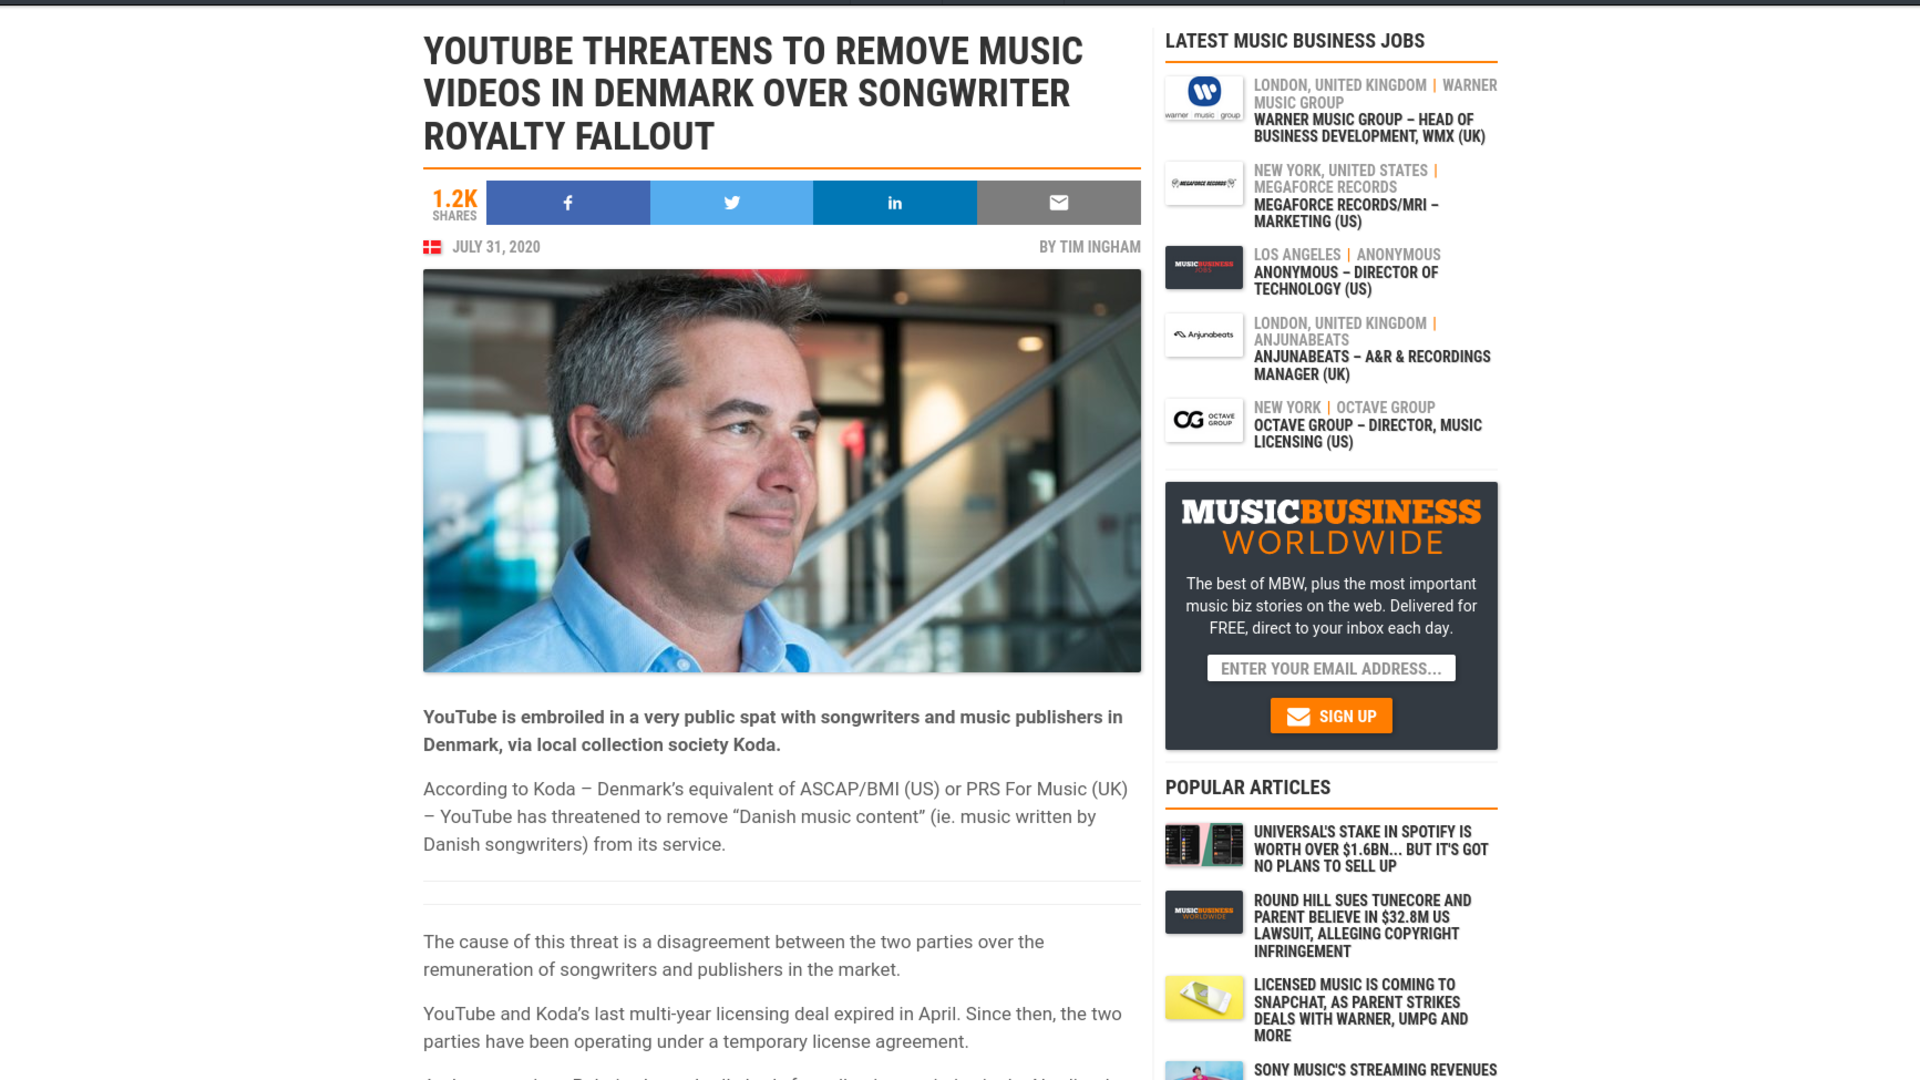 Fairness Rocks News YouTube threatens to remove music videos in Denmark over songwriter royalty fallout